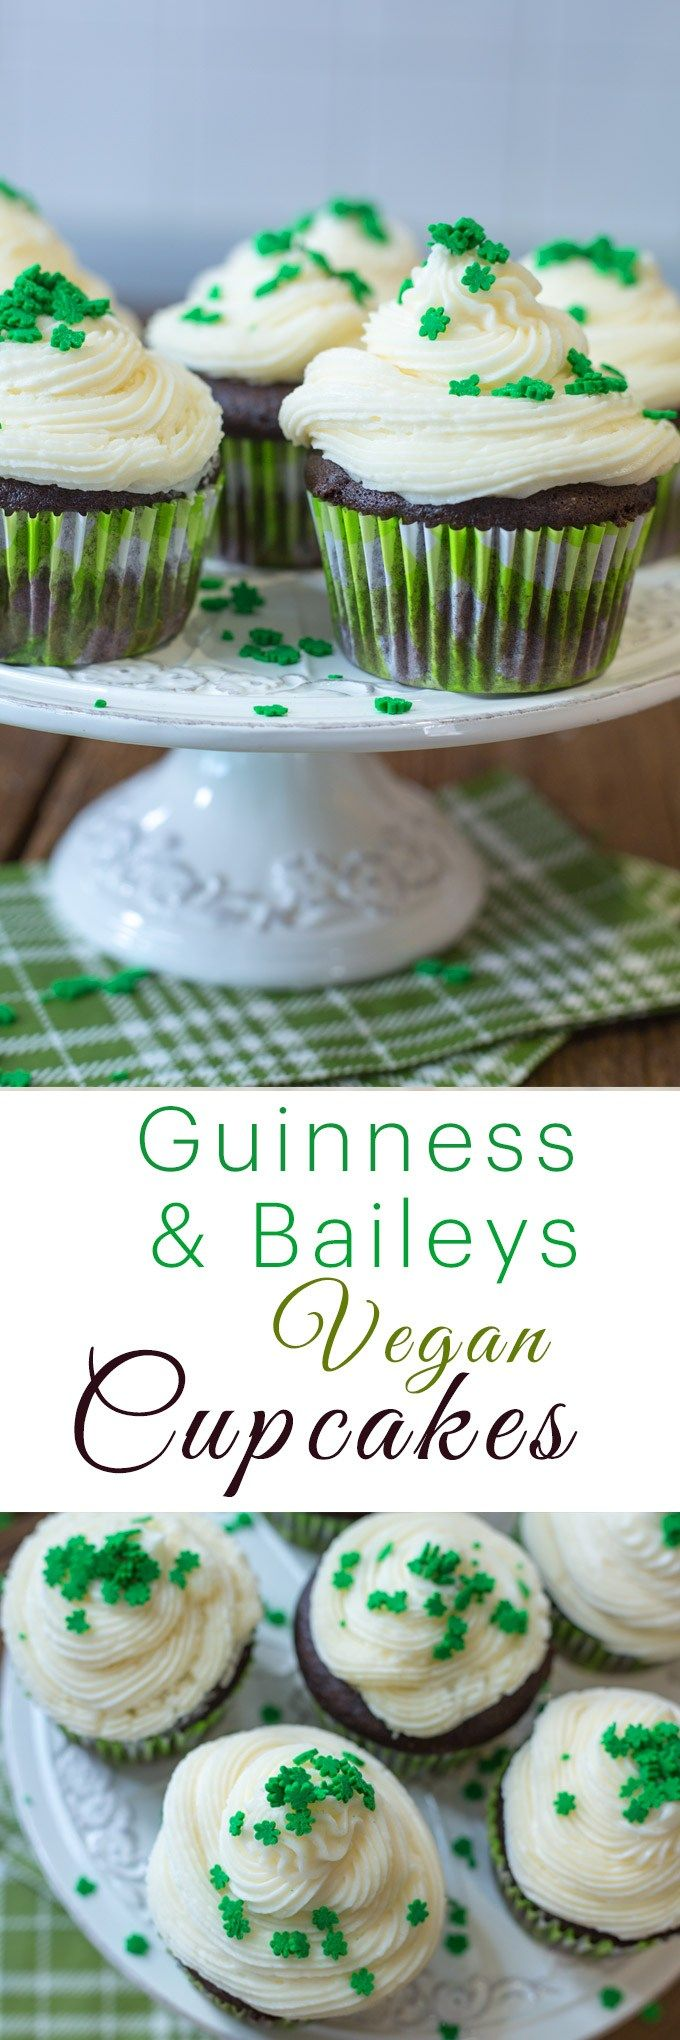 Guinness Cupcakes with Bailey's Buttercream